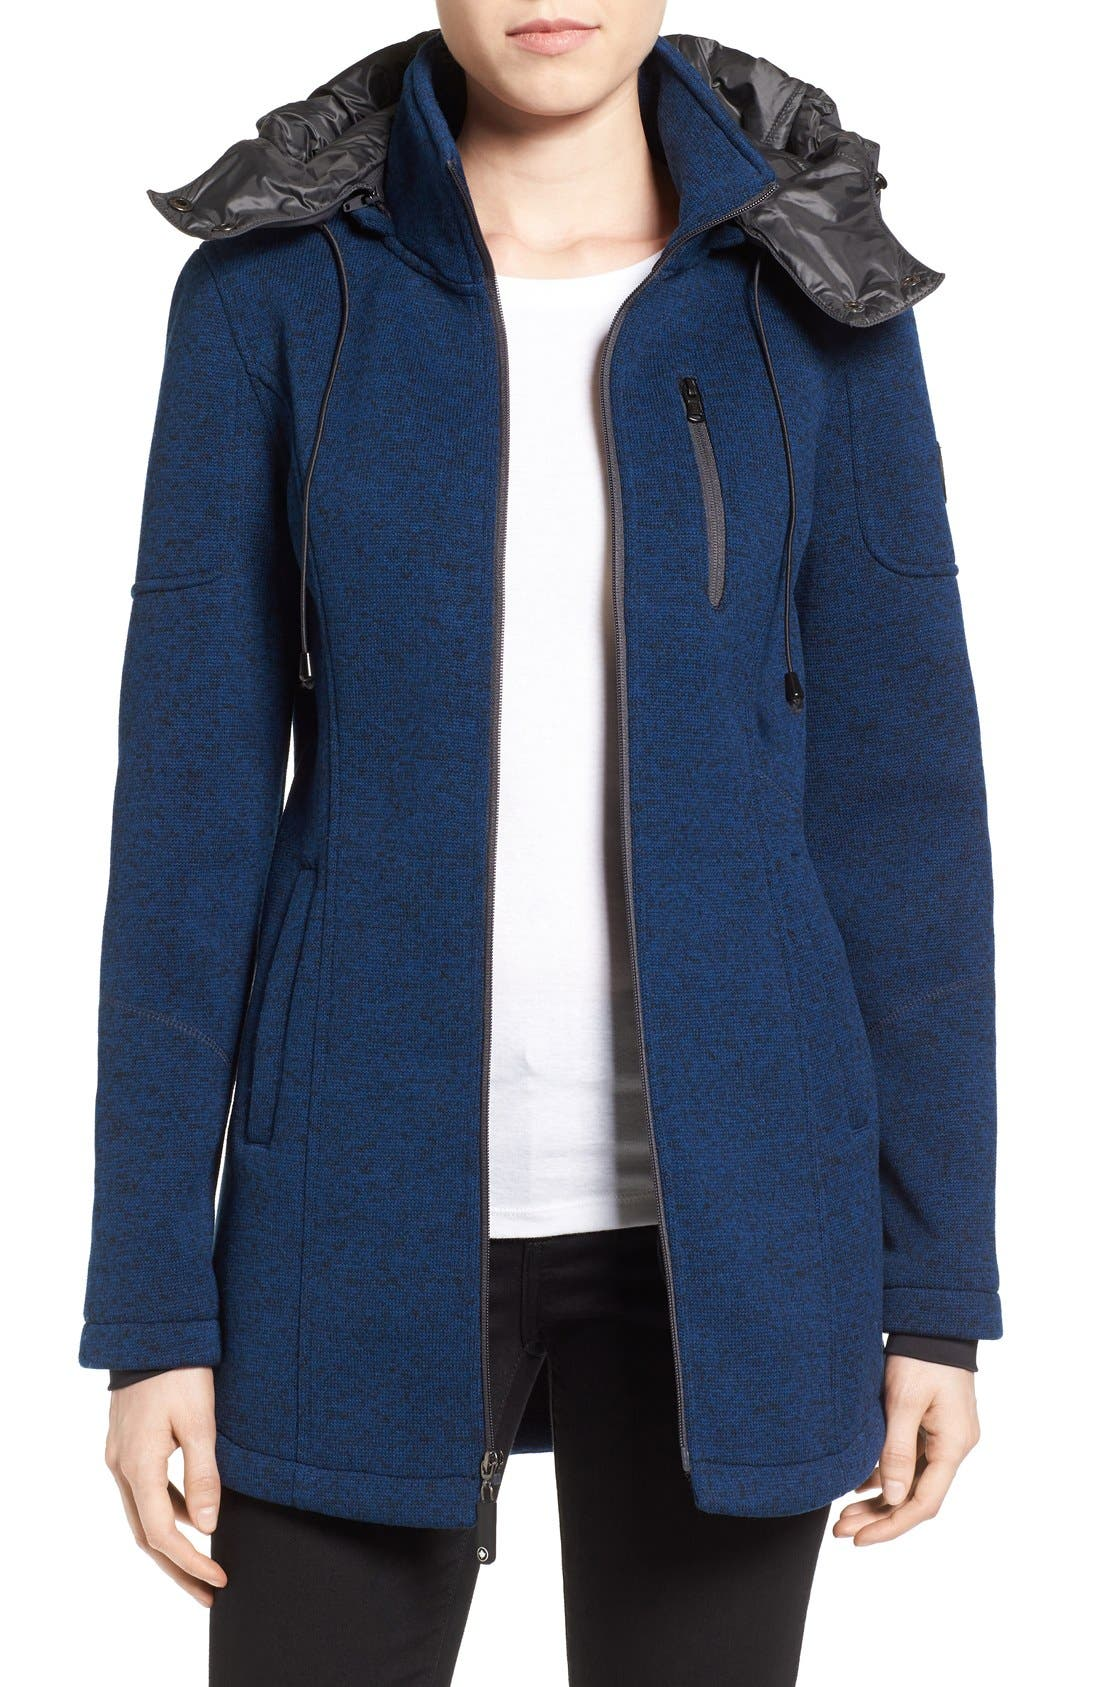 Halifax Bonded Knit Zip Front Jacket